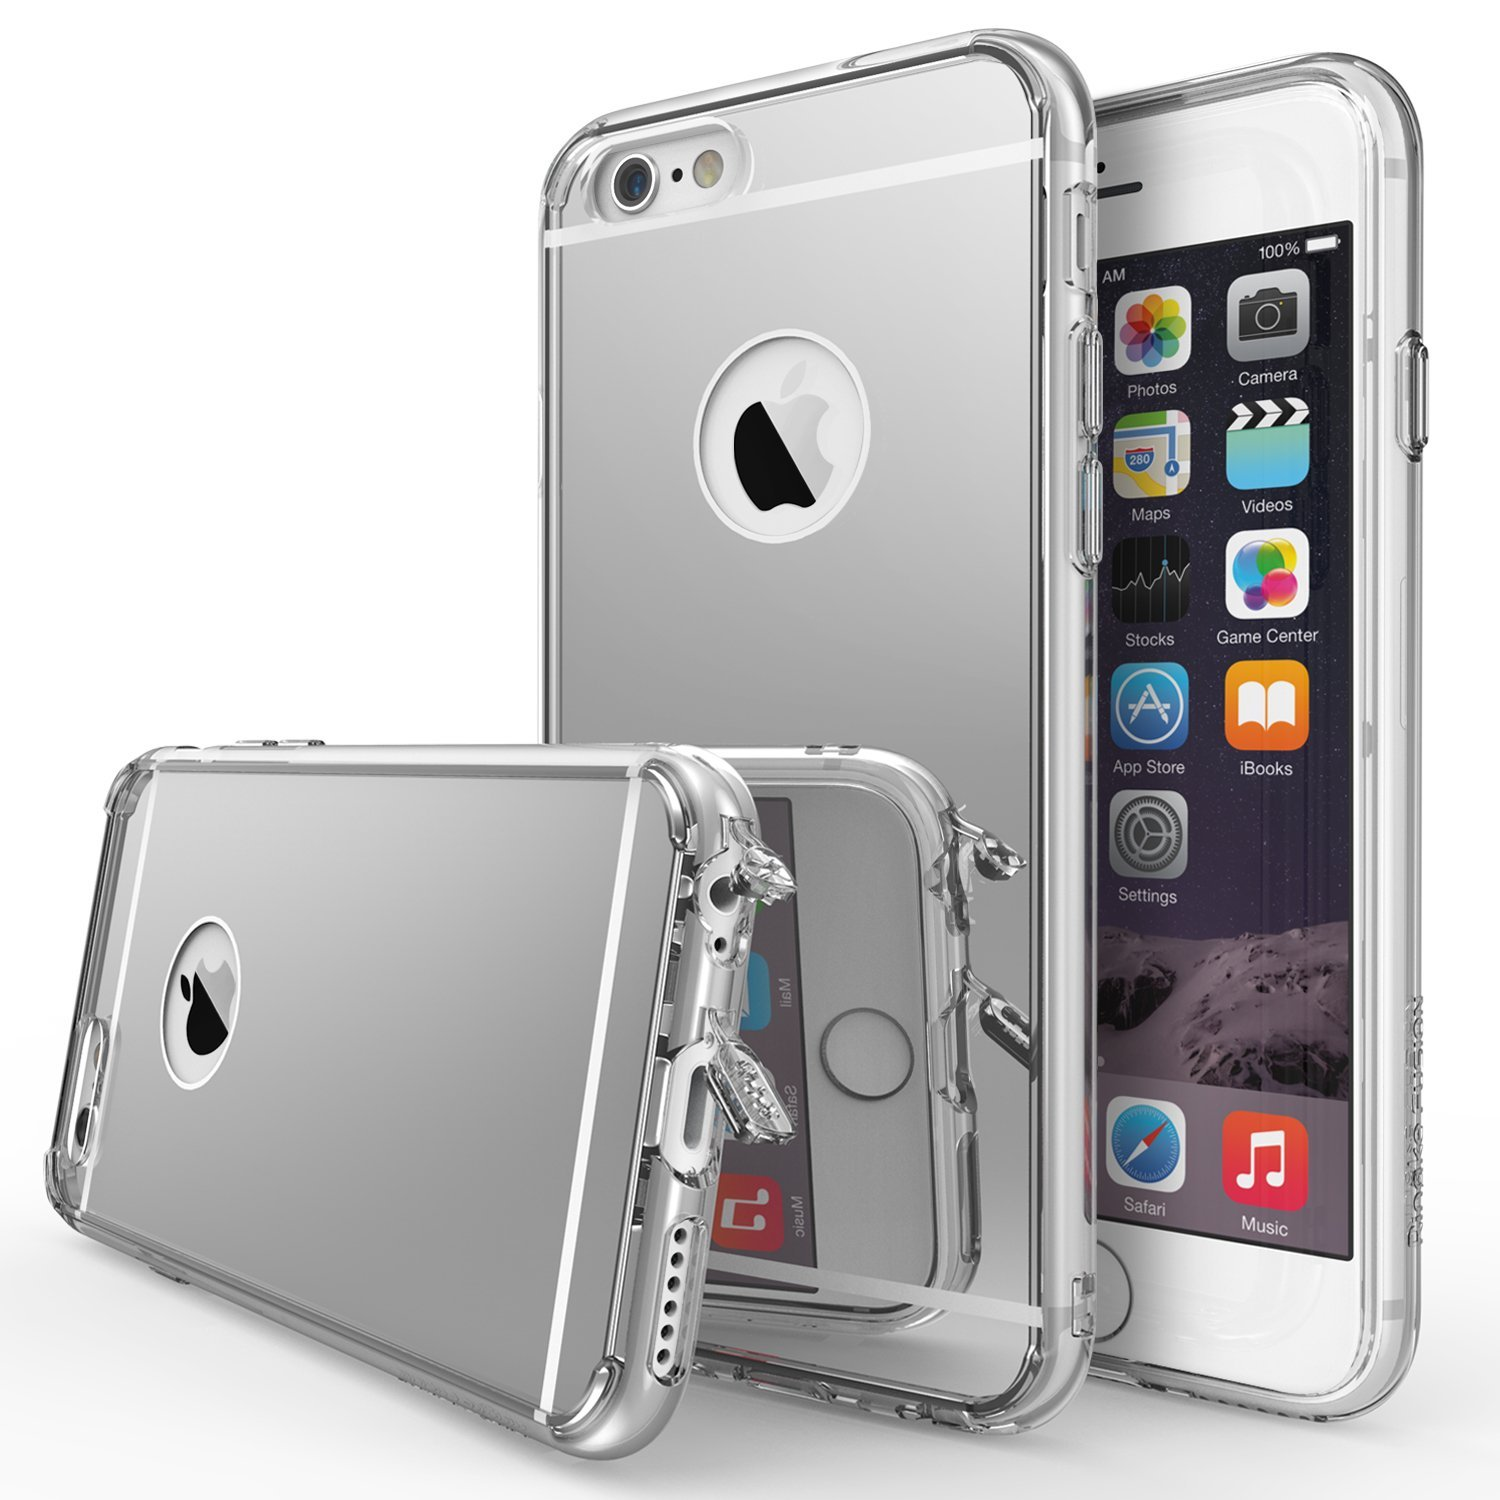 Apple iPhone 6 Case, Ringke FUSION MIRROR [Clear] [Dust Cap/Free Film] Shock Absorption Case